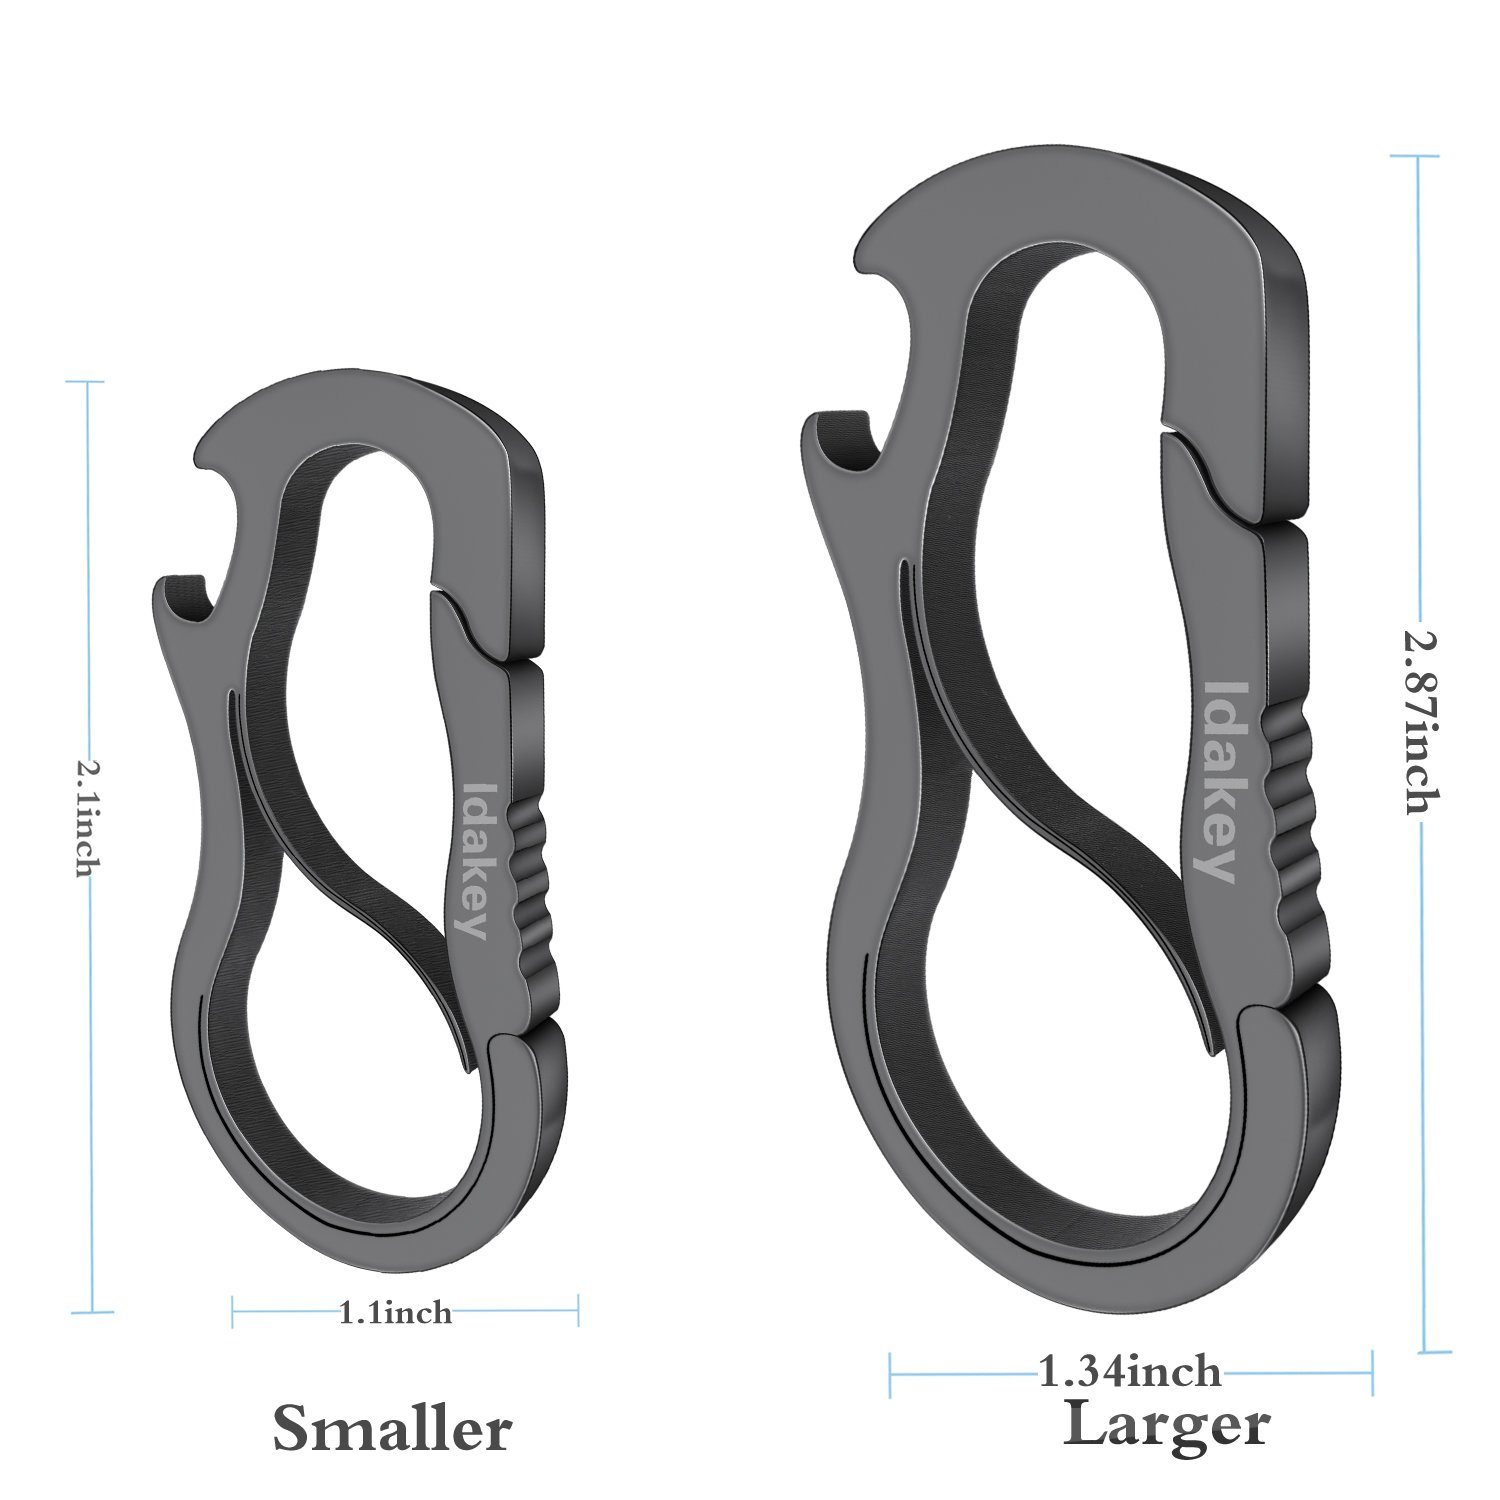 Idakey Full Stainless Steel Anti-Lost Keychain Carabiner Mutil Function Home Tool with Bottle Opener for Home Larger Version